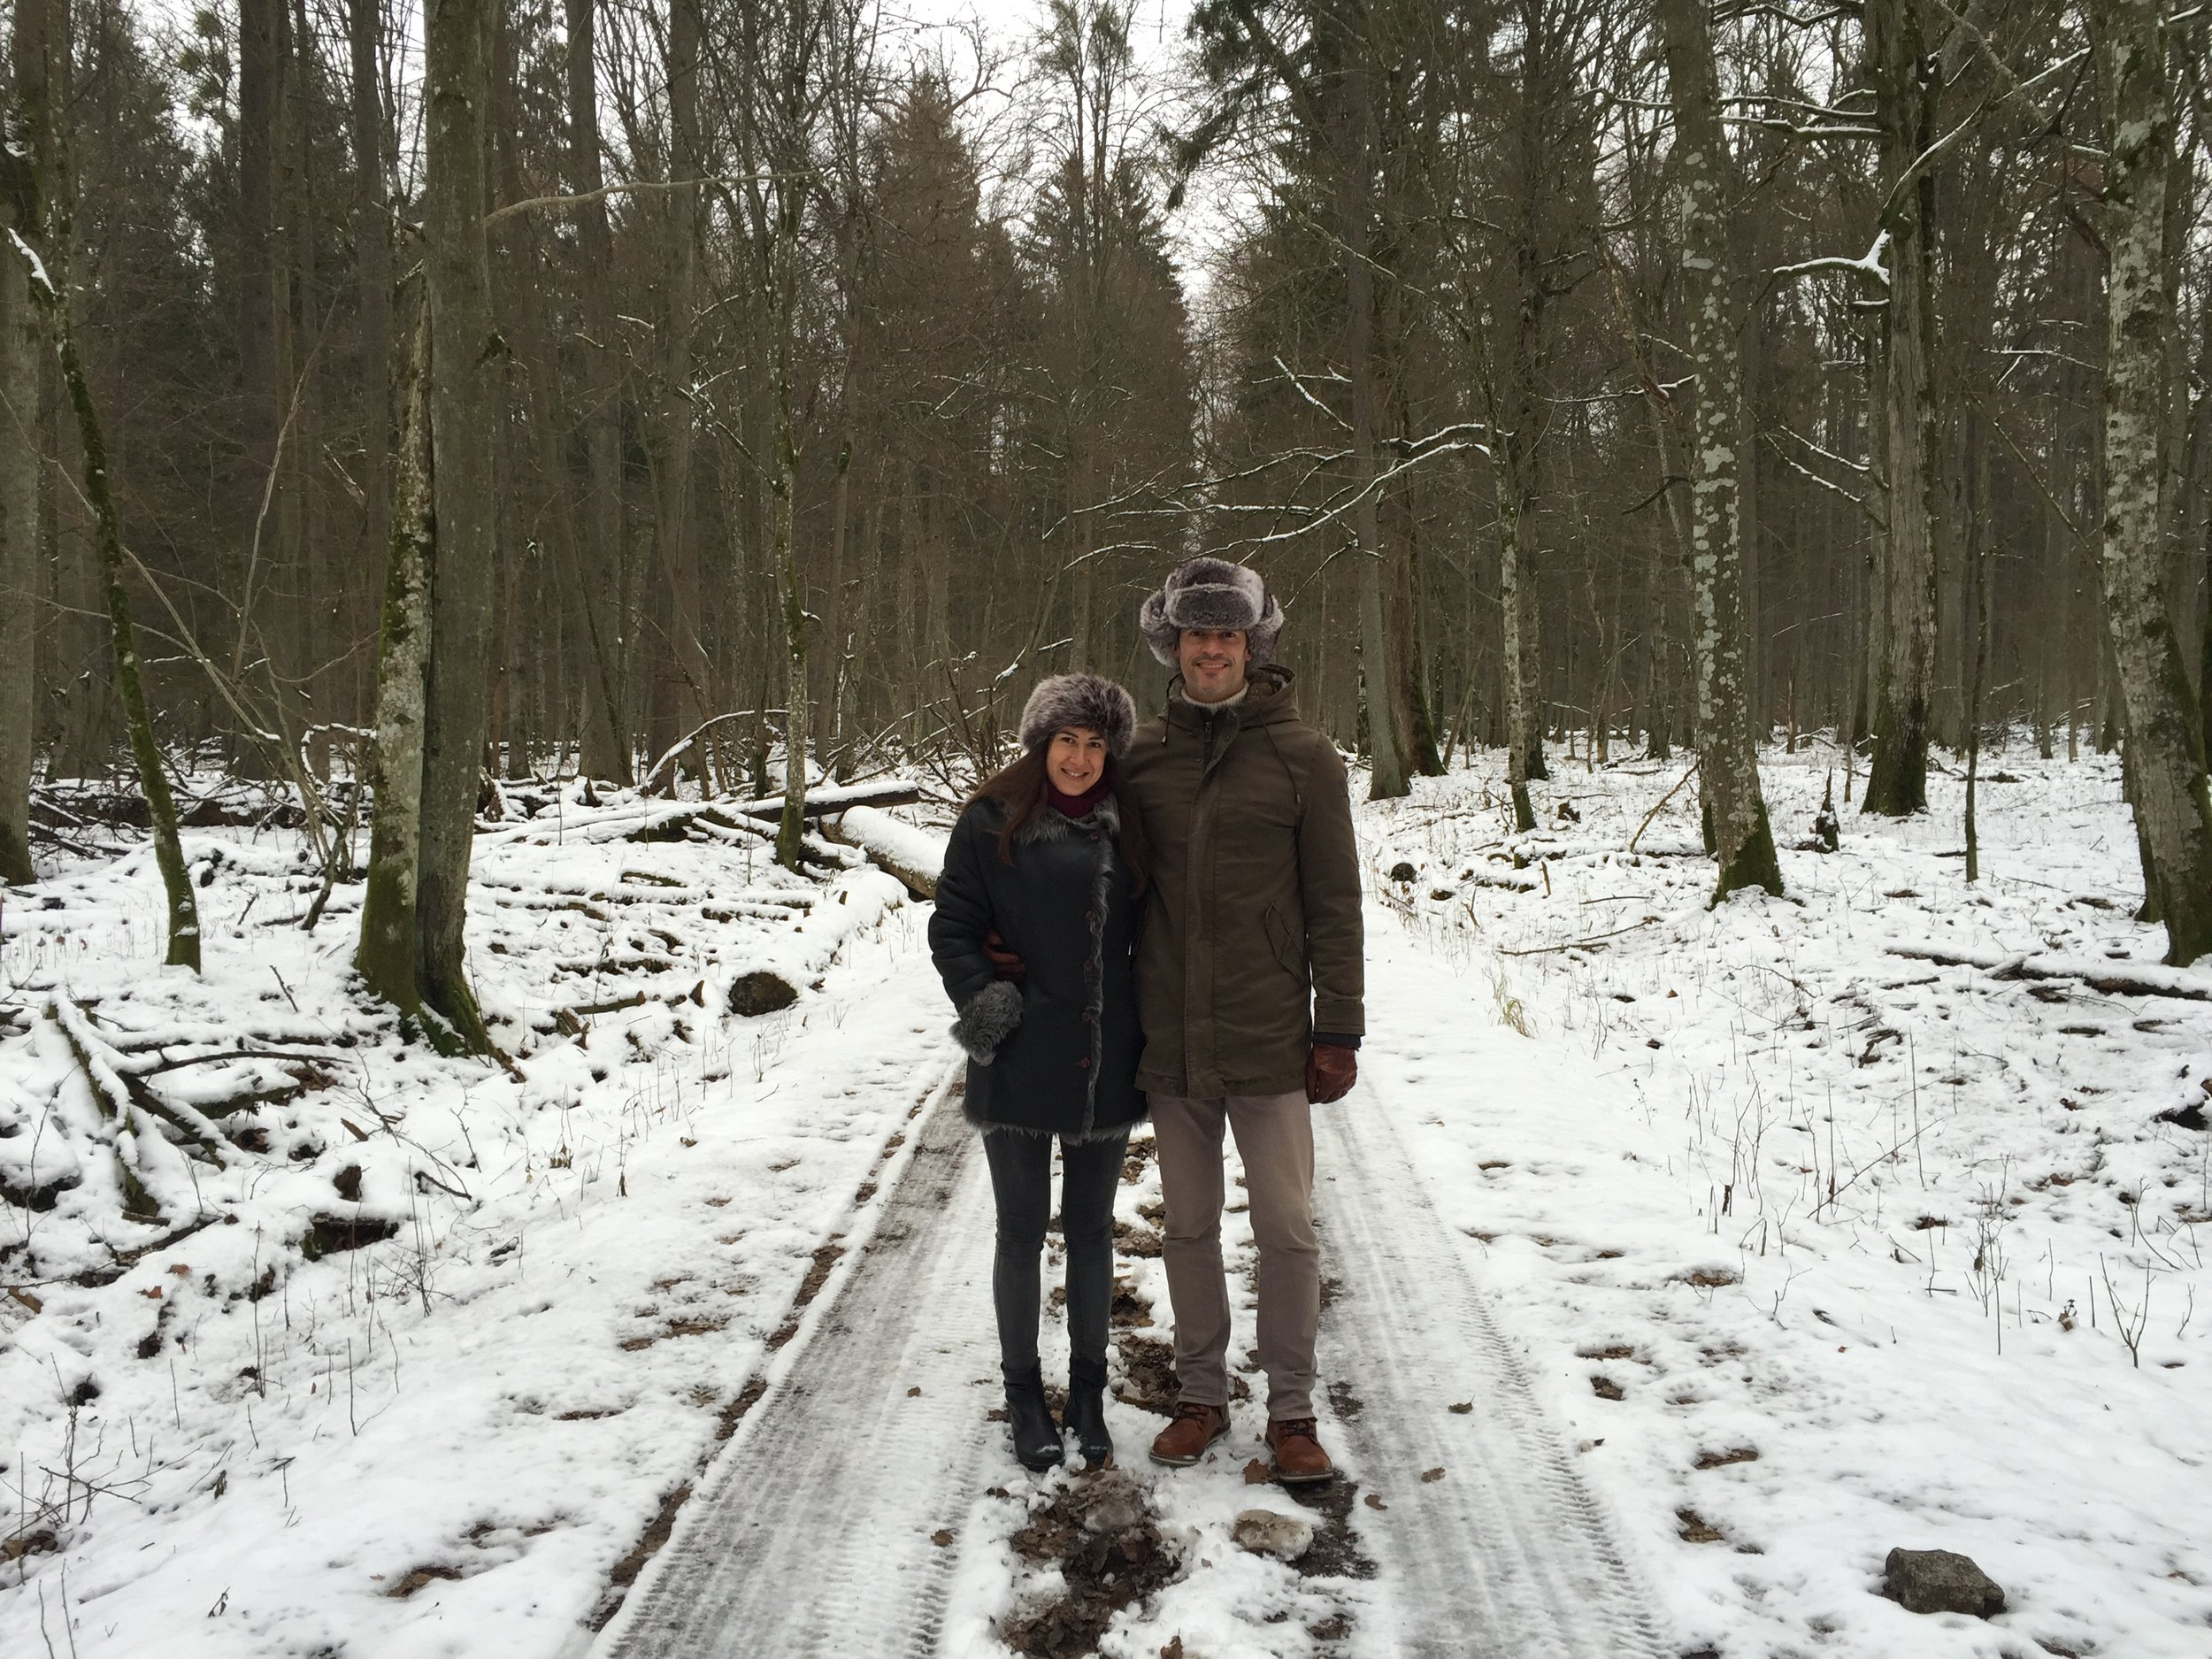 The Mrs. and I bundled up for a forest walk (just a couple of degrees below freezing).